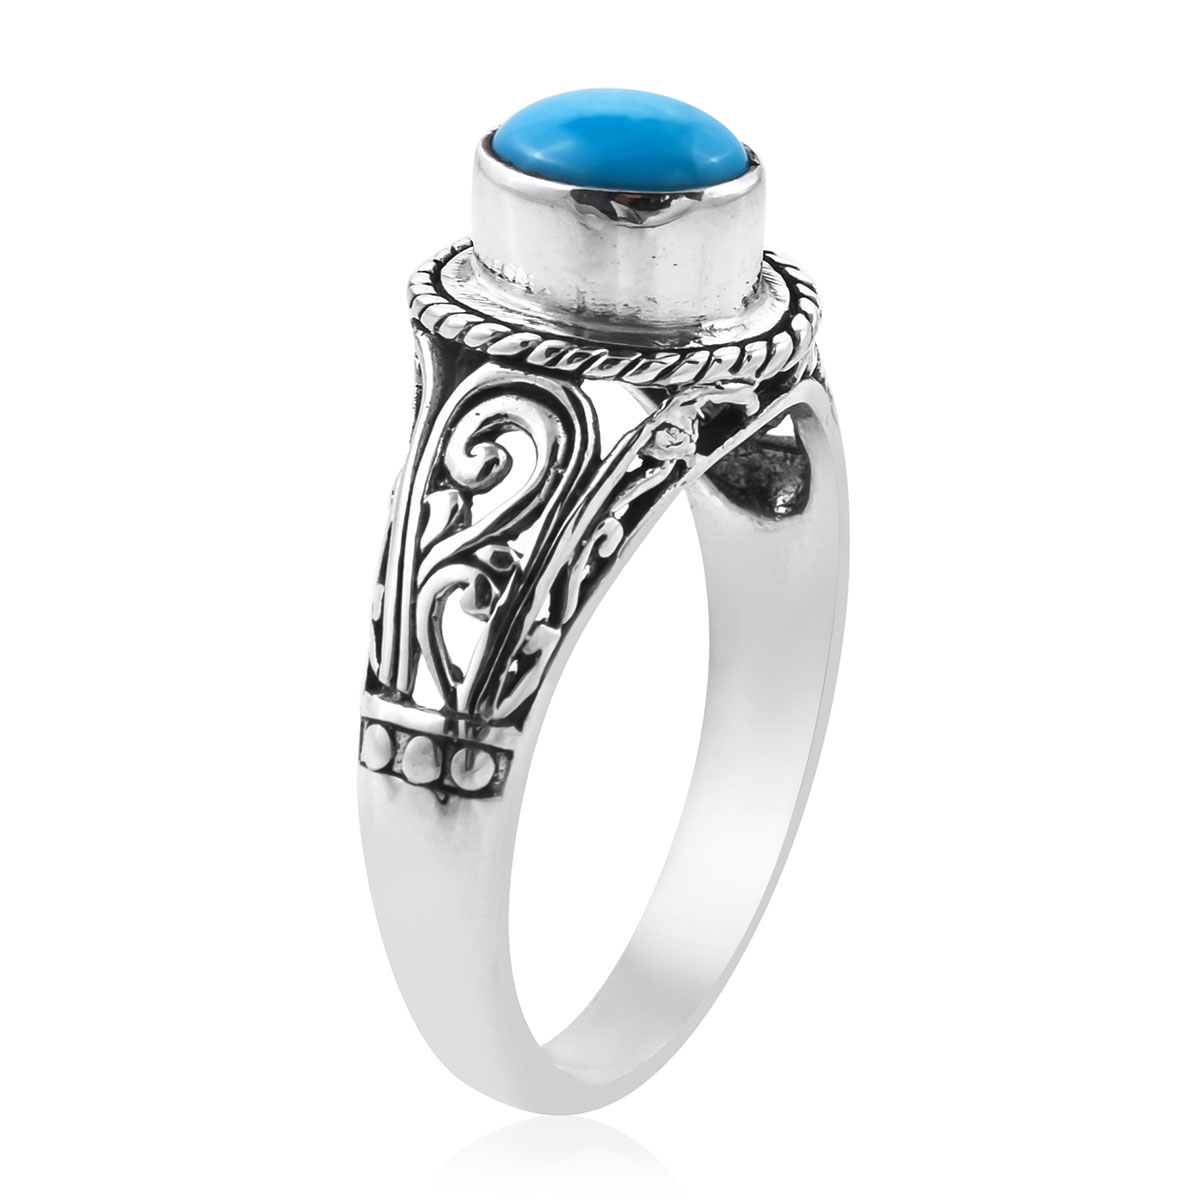 BALI LEGACY Arizona Sleeping Beauty Turquoise Ring in Sterling Silver (Size 7.0) 1.11 ctw